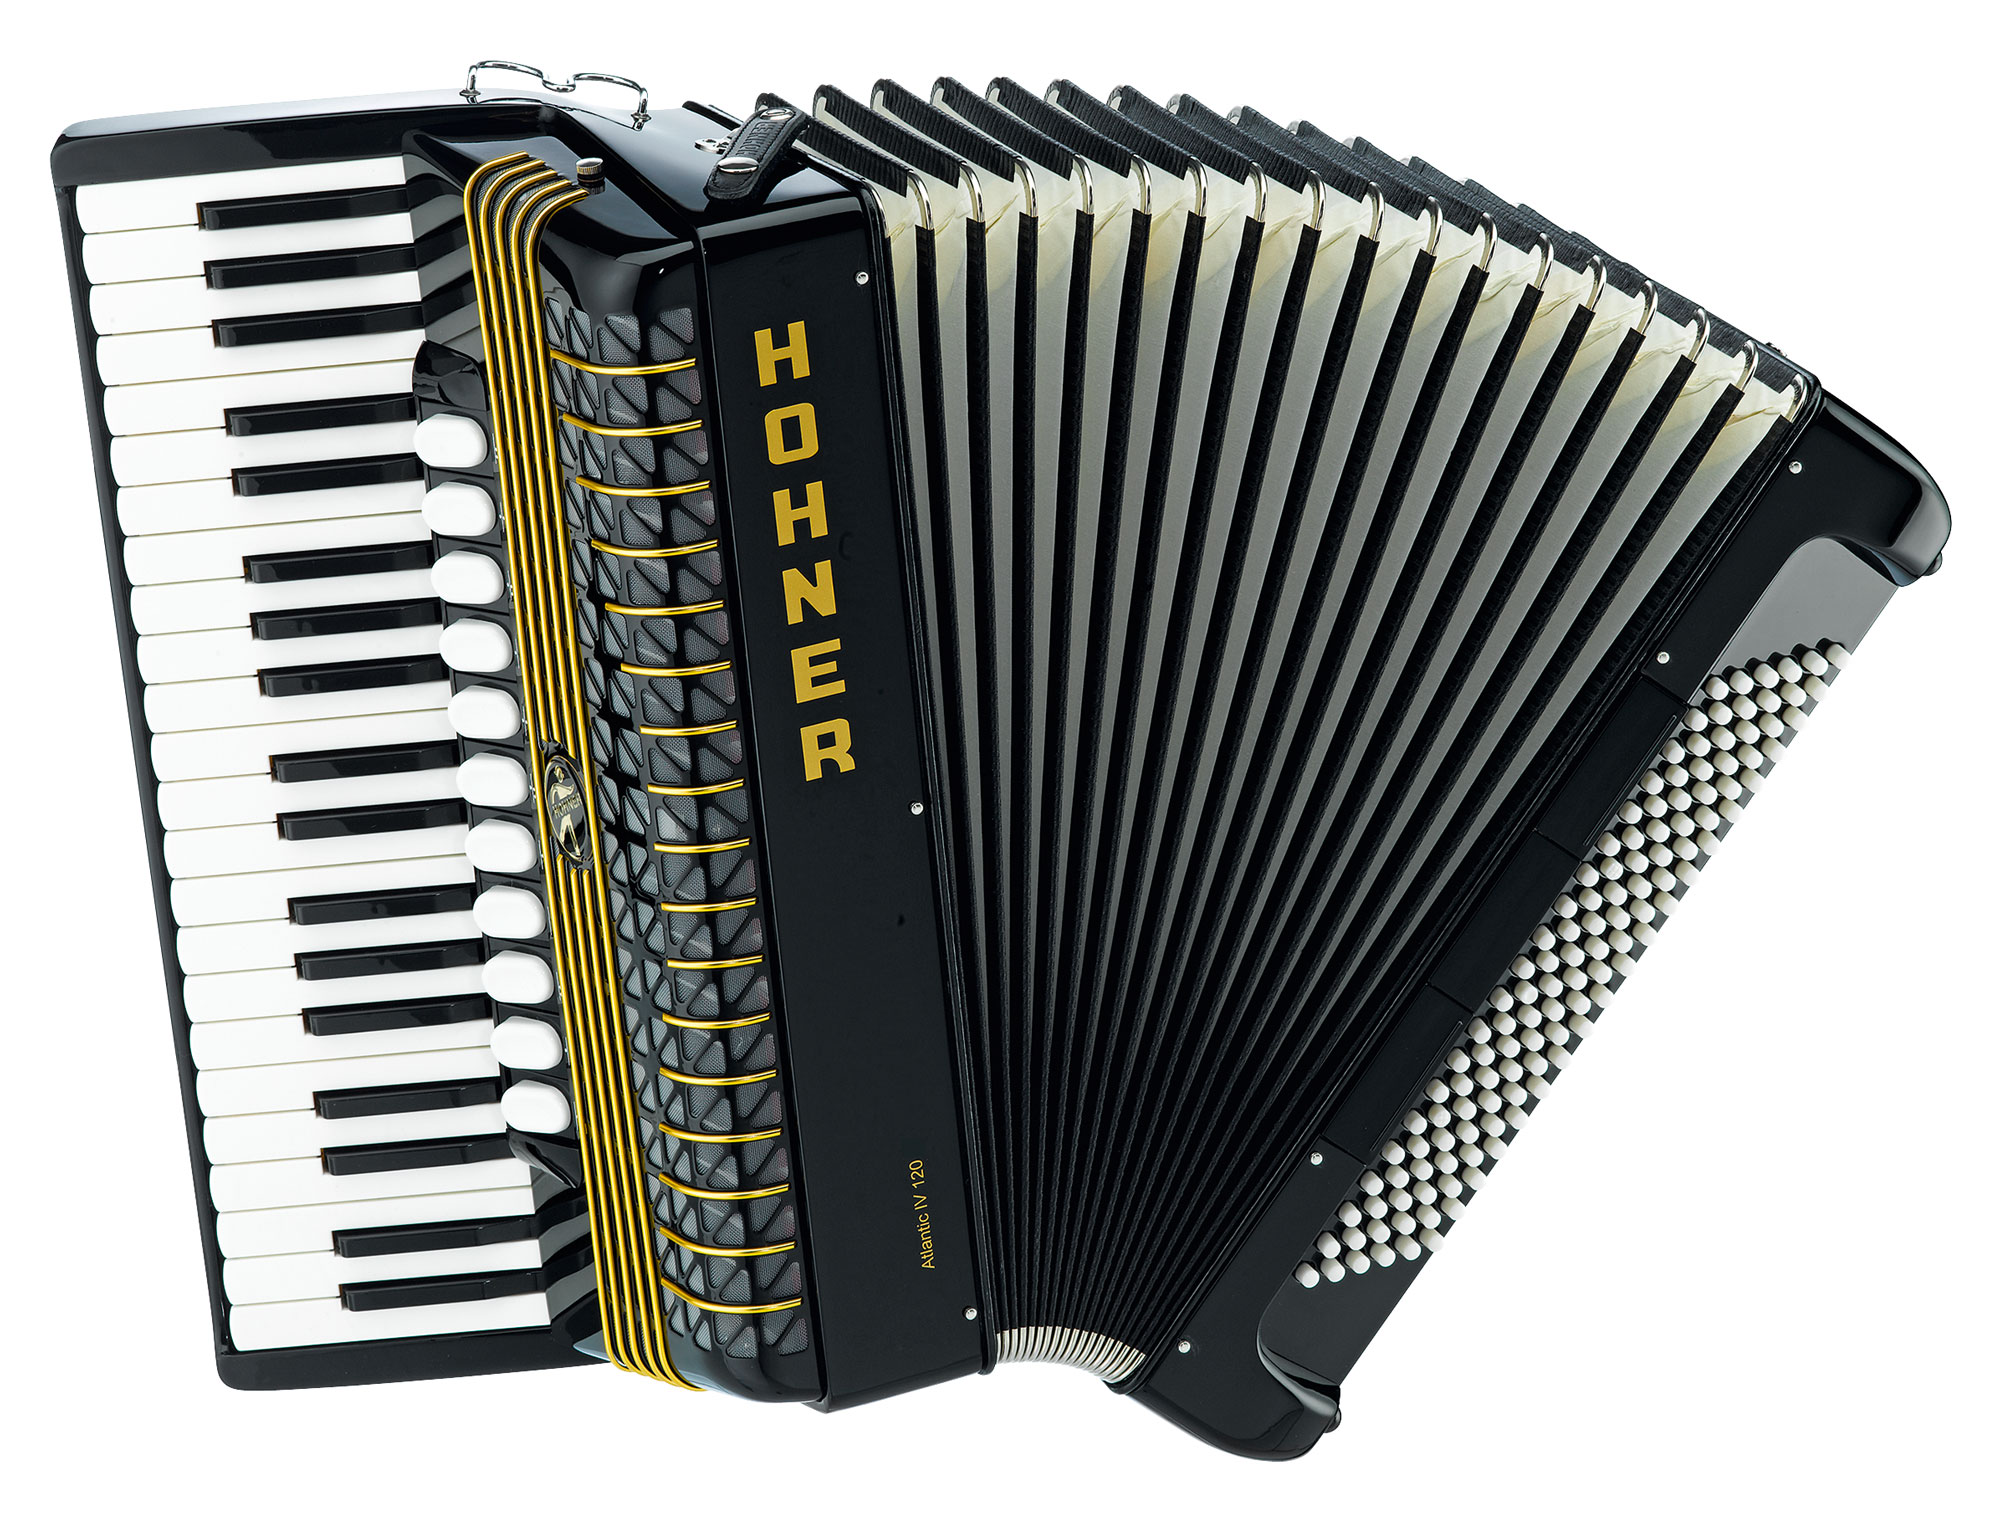 Hohner Atlantic IV|120 Akkordeon 1A Showroom Modell (Zustand wie neu)